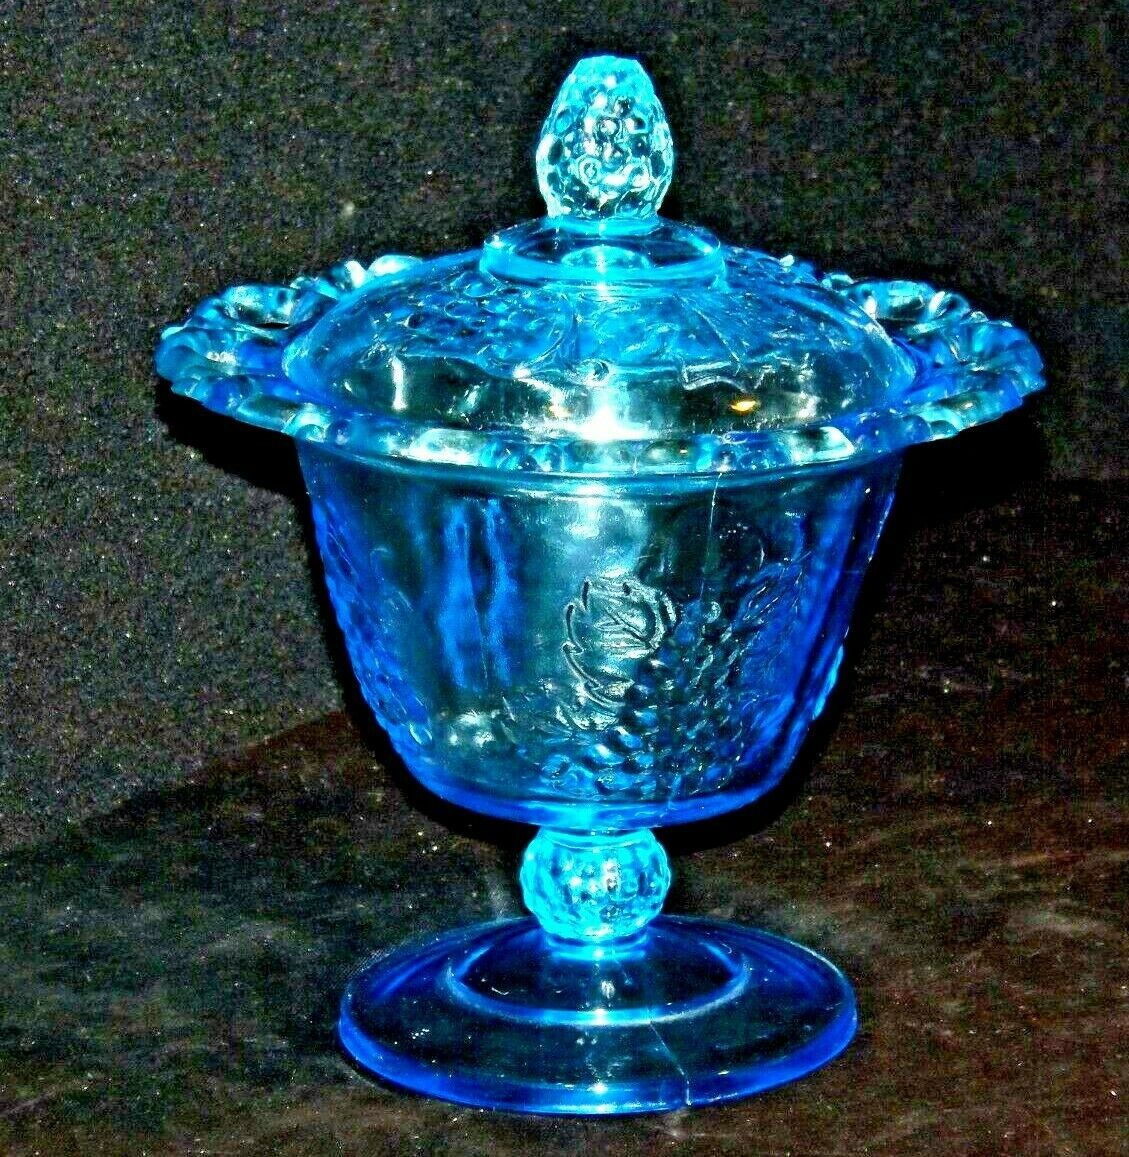 Blue Pedestal Candy Compote Depression Glass 2 piece AA19-CD0025 Vintage